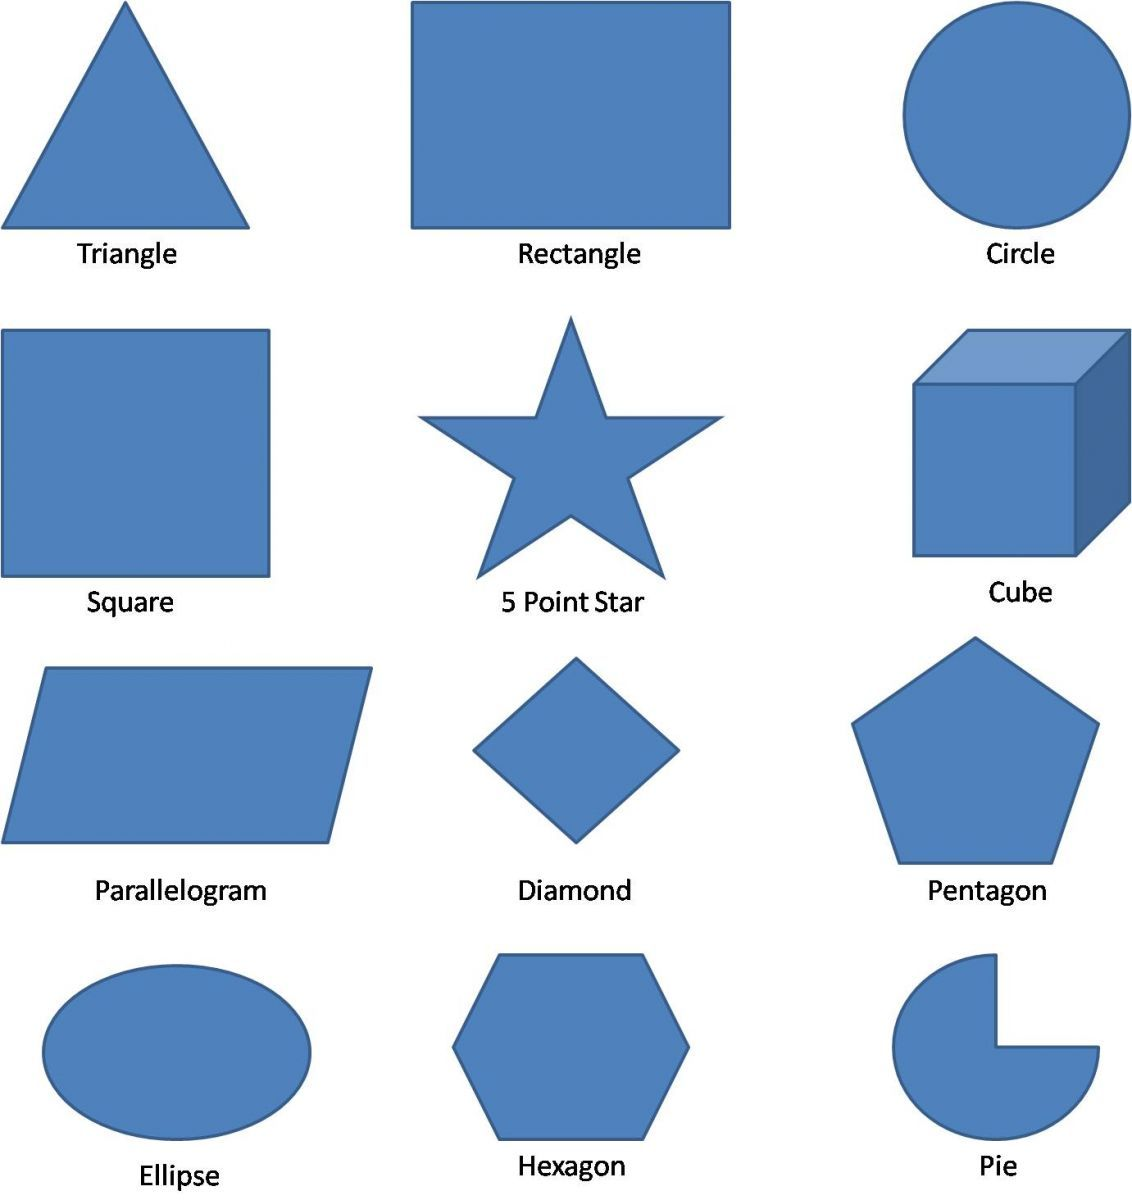 medium resolution of Geometry worksheets for grade 3 kids for math olympiad prepartions. Learn  the basic shapes like square